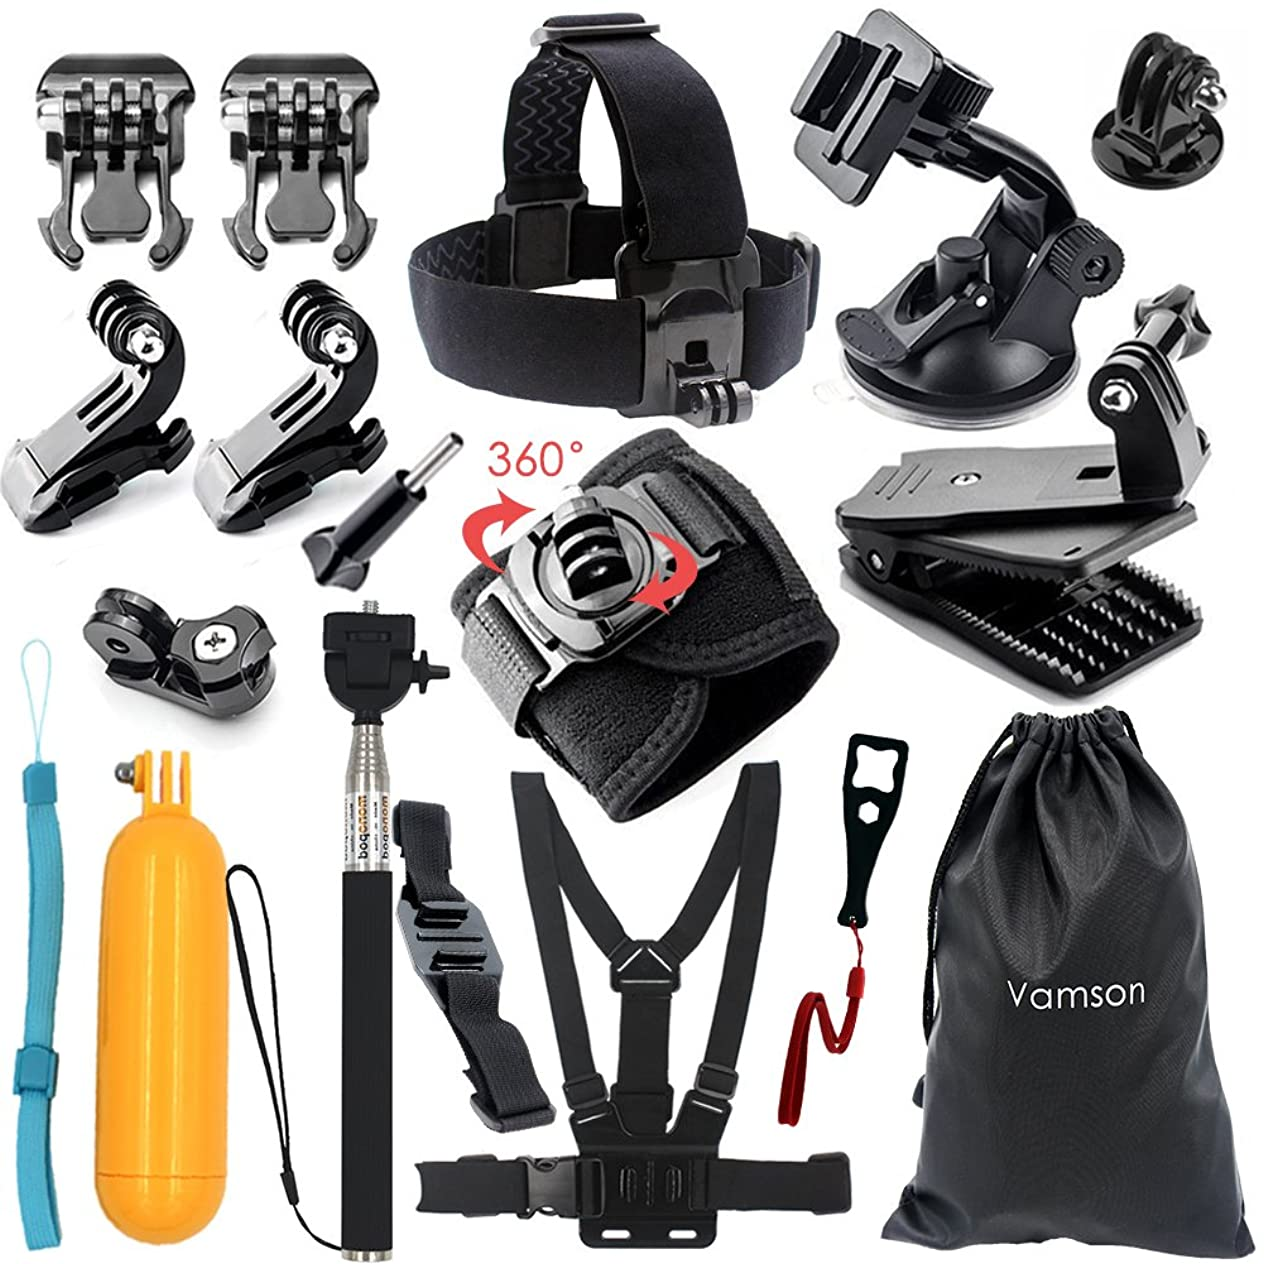 Vamson 18 in 1 Accessories Kit for GoPro Hero 6 5 4 3+ Session Accessory Bundle Set for Action Camera SJ4000 SJ5000 SJ6000 Xiaomi Yi-Flotation Handle+Head Strap+Chest Strap ezgmiilp765